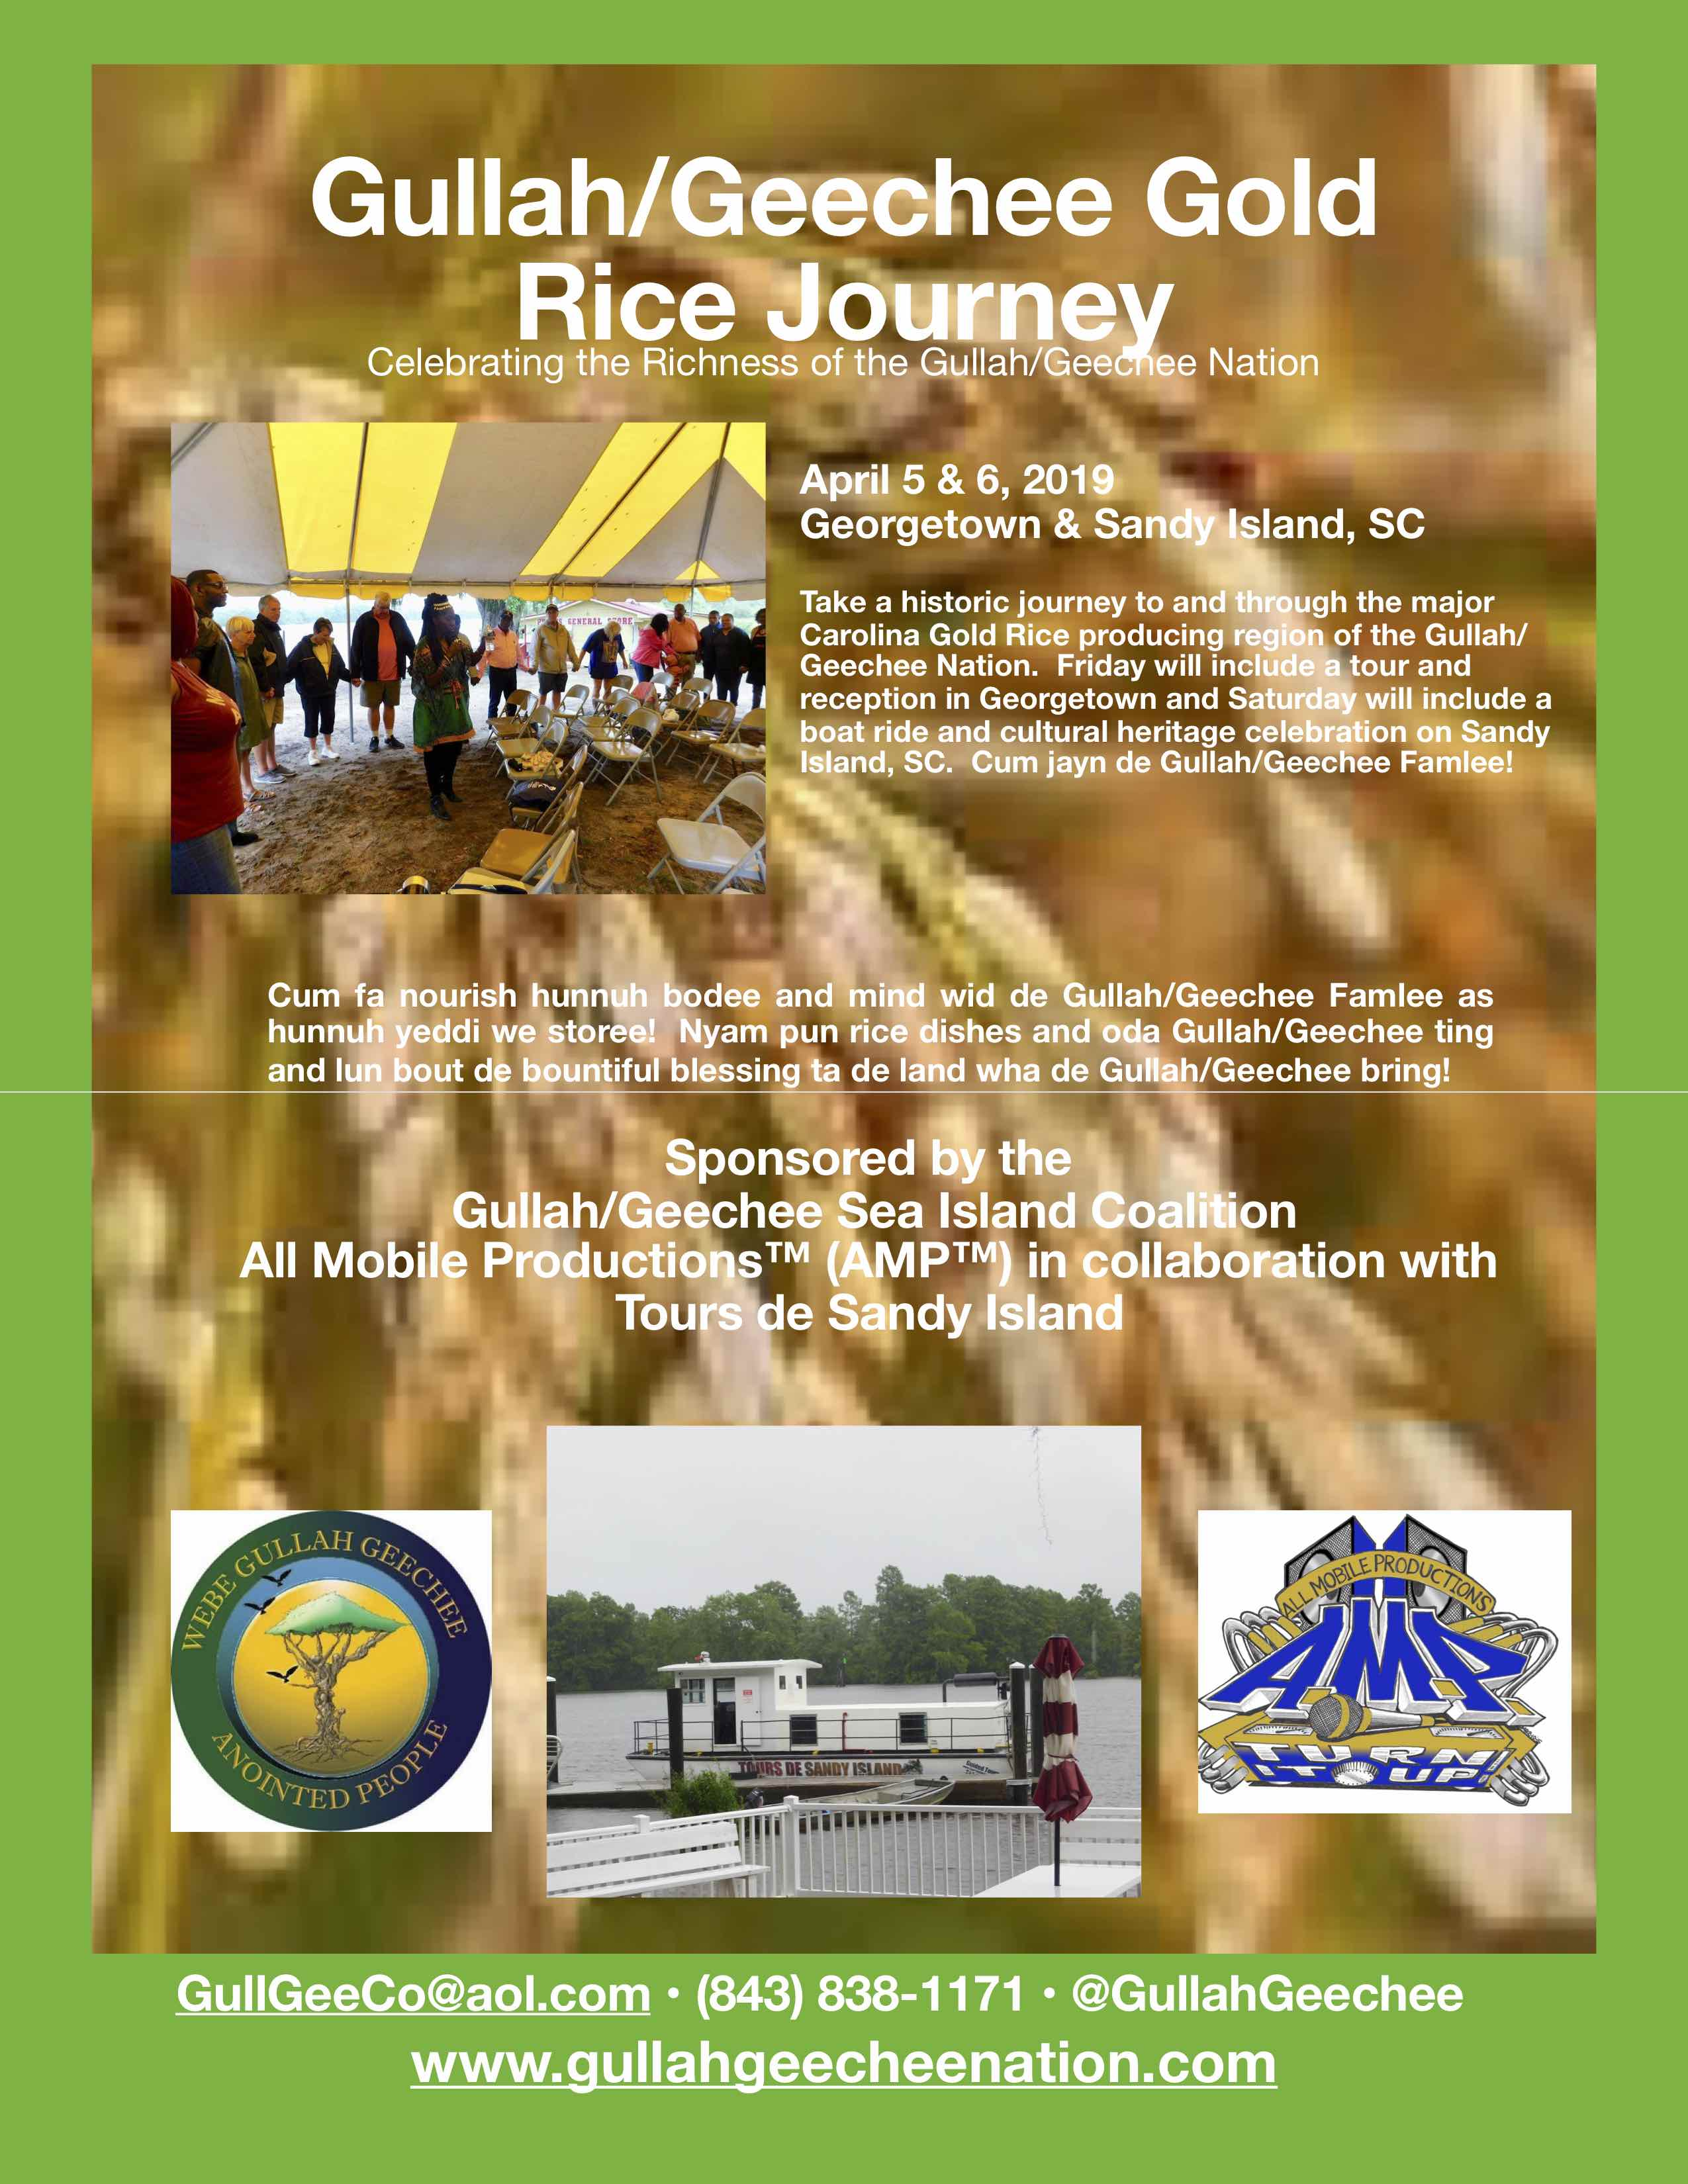 Gullah/Geechee Gold Rice Journey Flyer